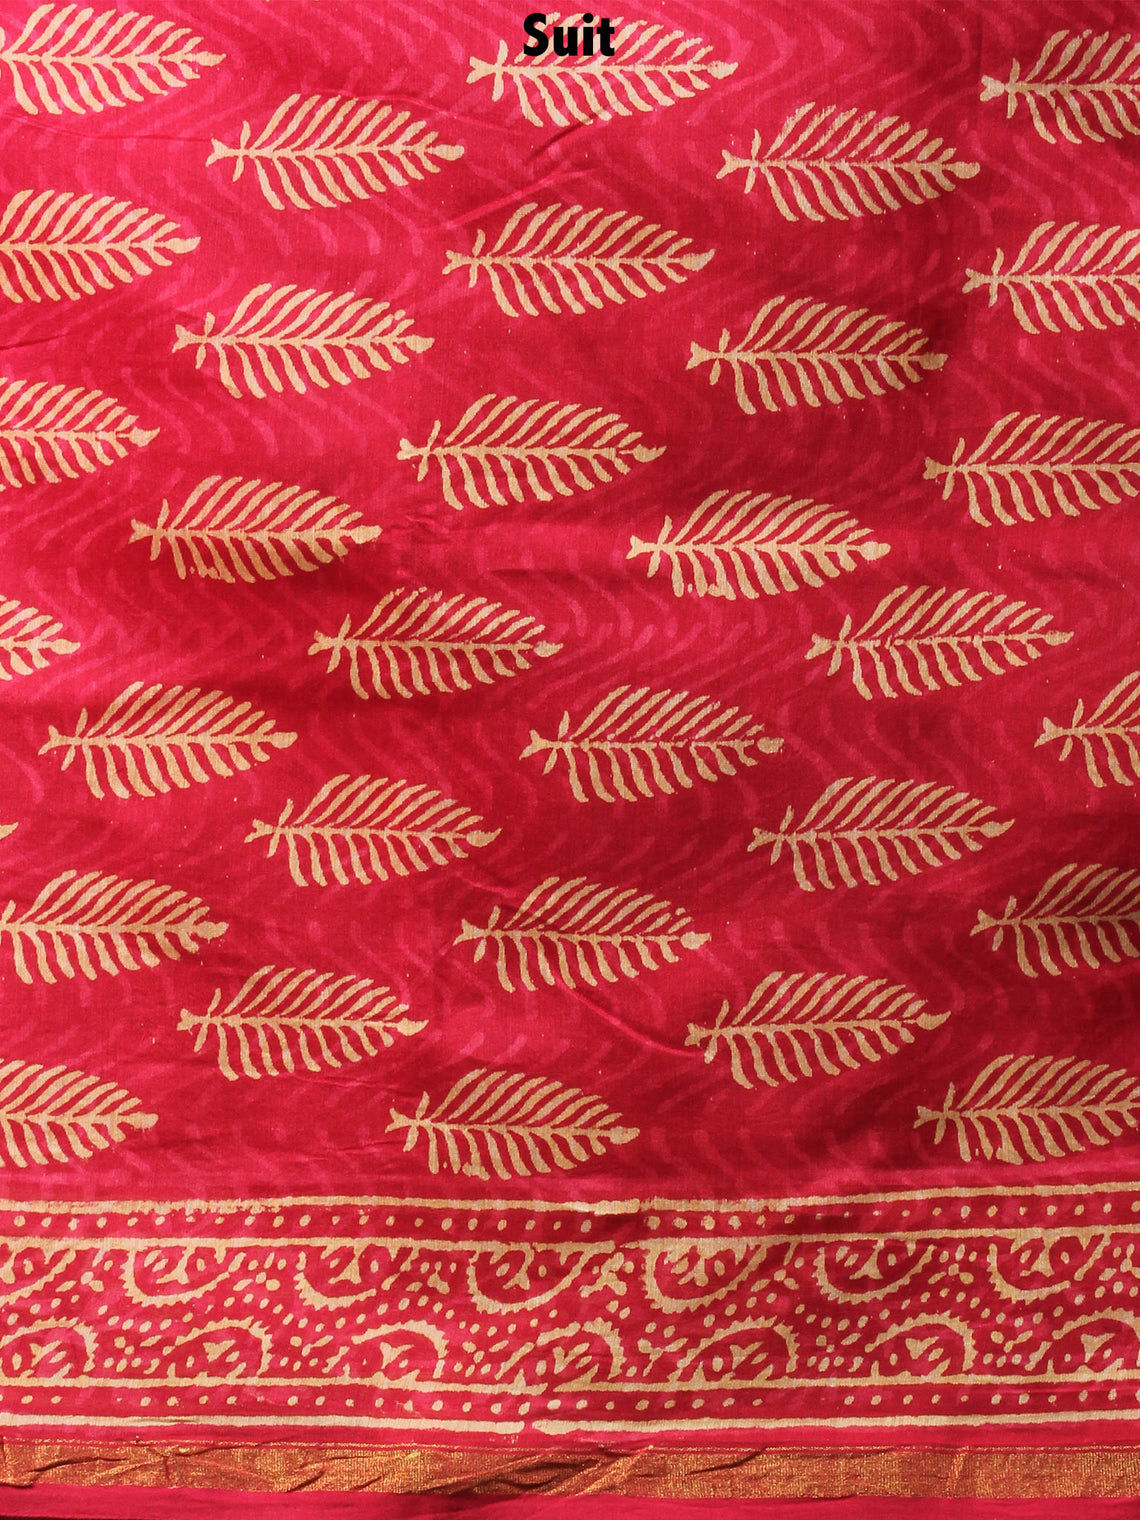 Deep Red Beige Hand Block Printed Chanderi Kurta-Salwar Fabric With Chanderi Dupatta - S1628087